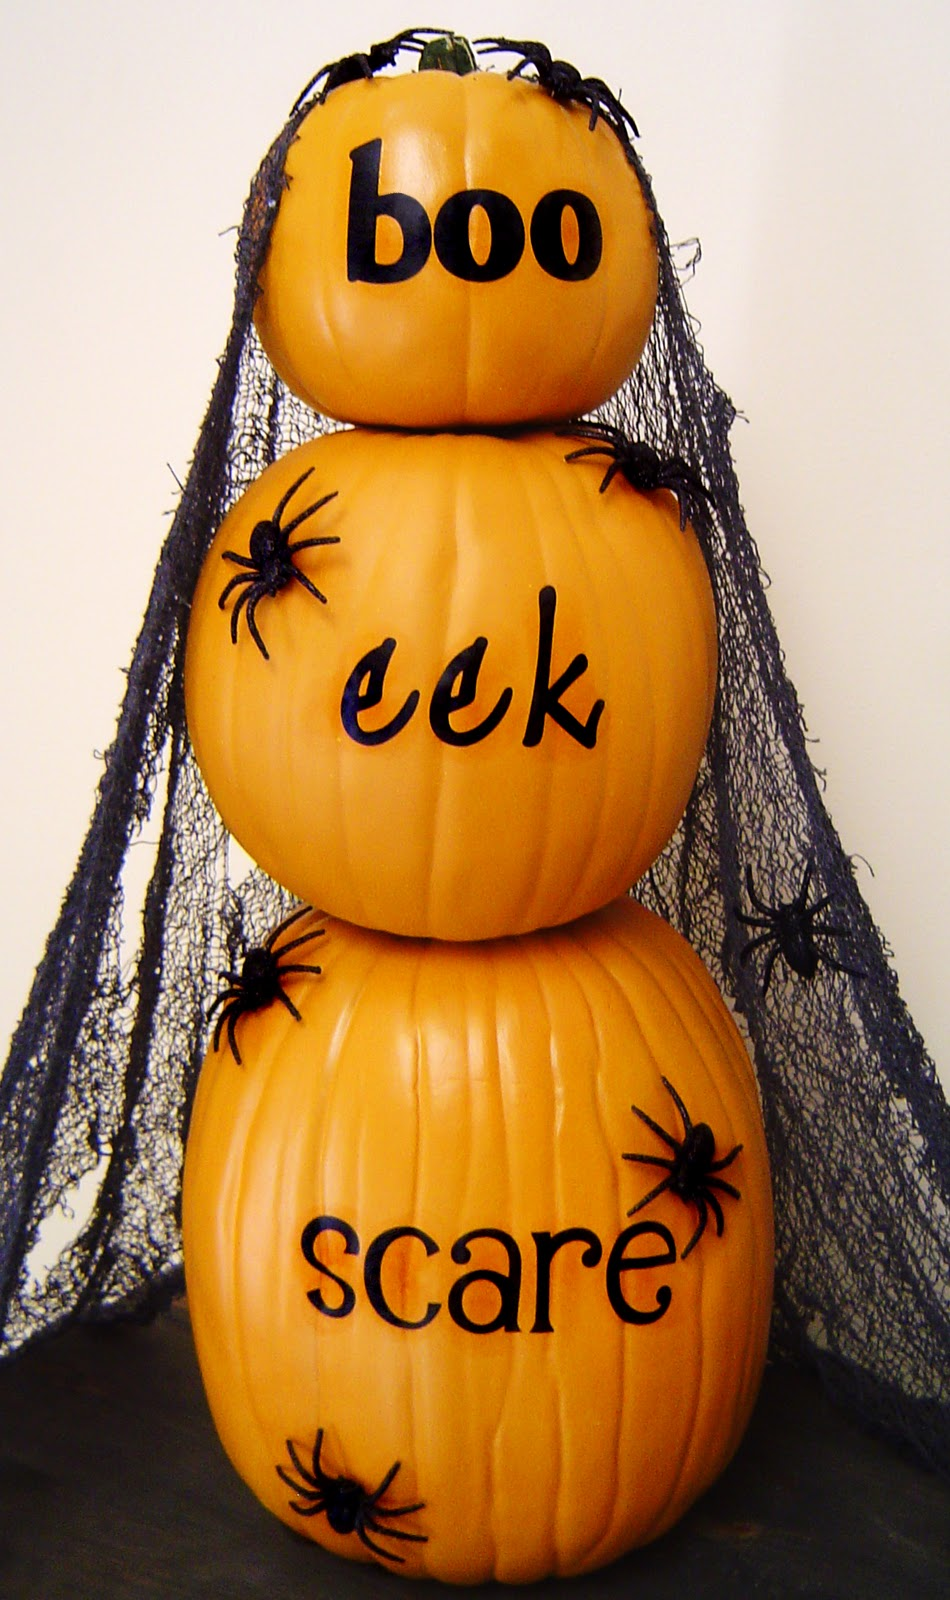 Three pumpkins stacked on top of each, with boo, eel and scare written on them